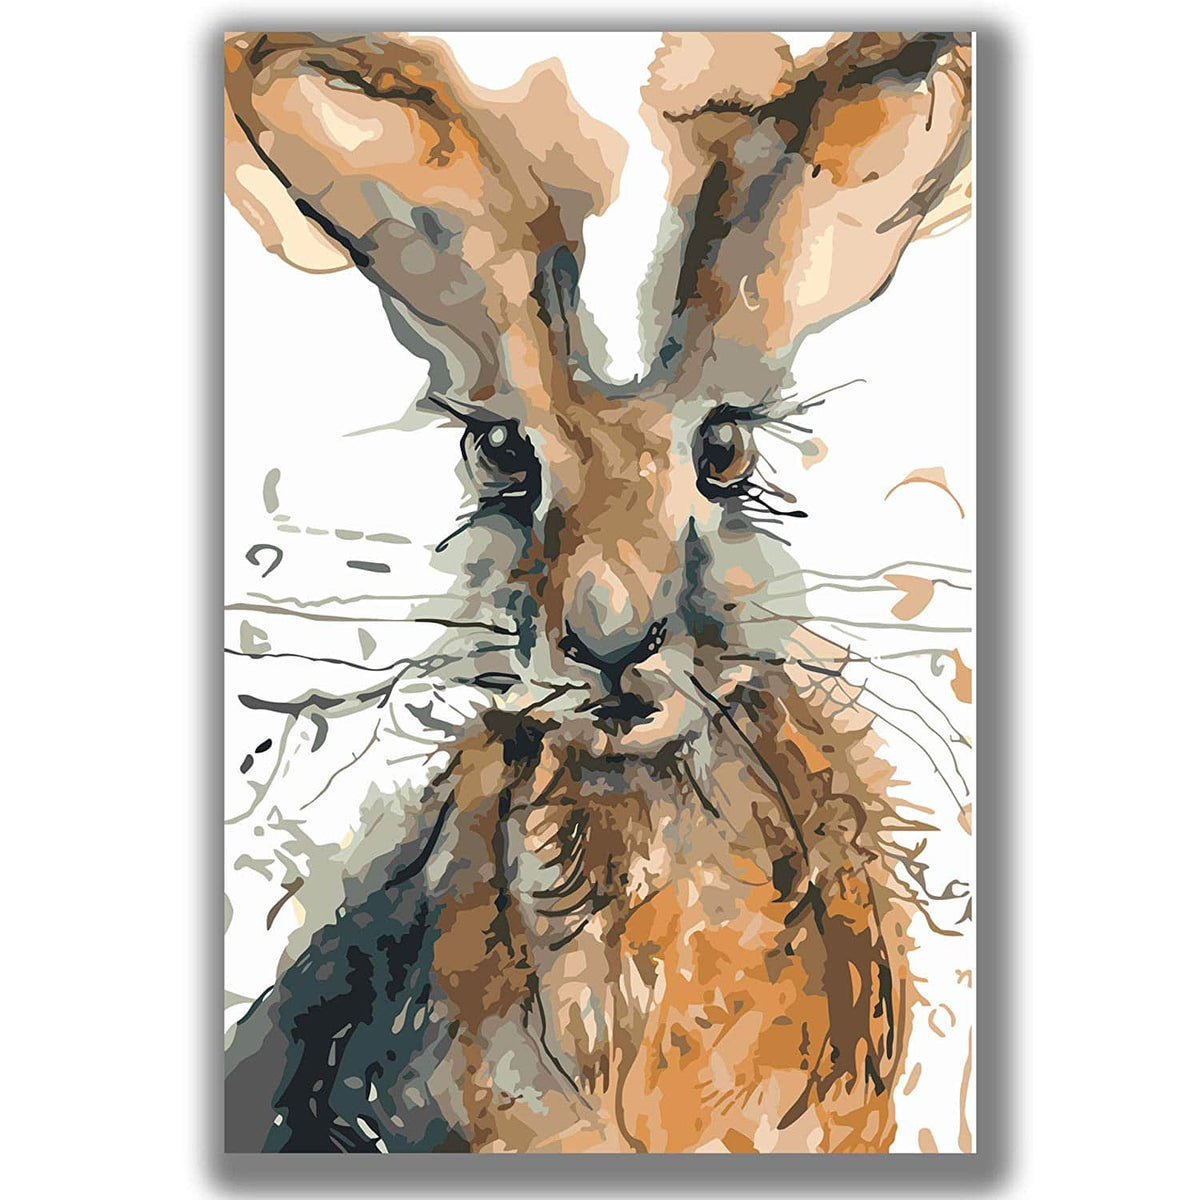 Rabbit Art - Paint by numbers canvas for adults from paint pots